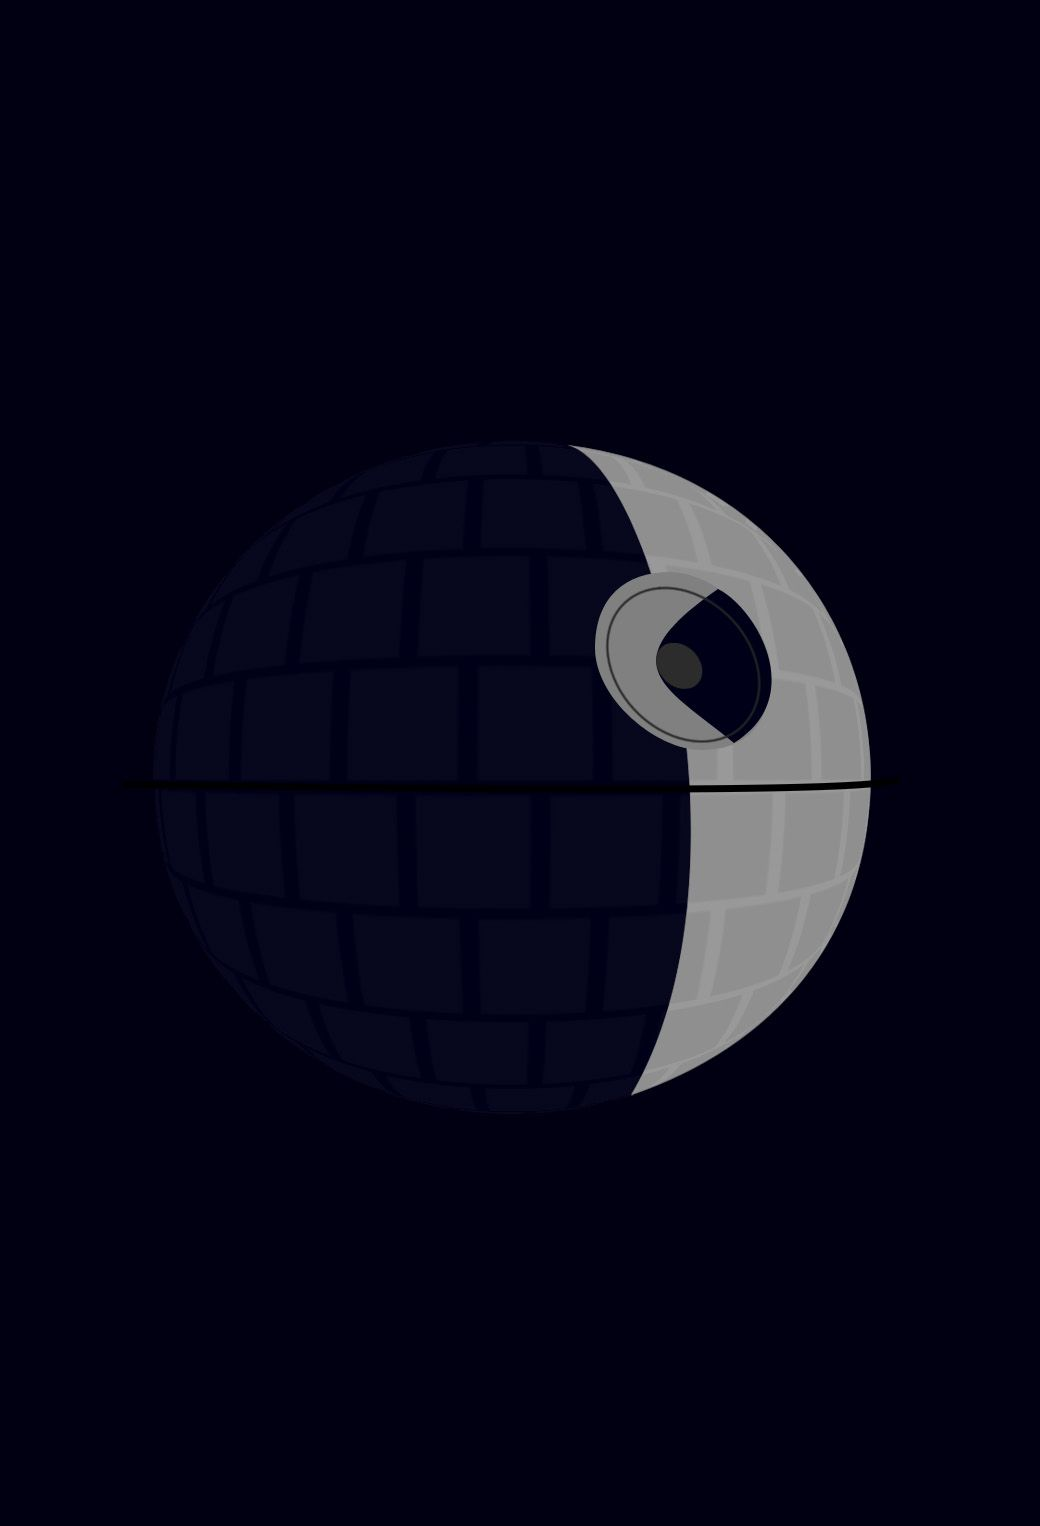 Phone Lockscreen Hd Vintage Images Kawaii Drawing Artist Epic Anime Pics Http Androidepiczo Star Wars Wallpaper Death Star Wallpaper Star Wallpaper